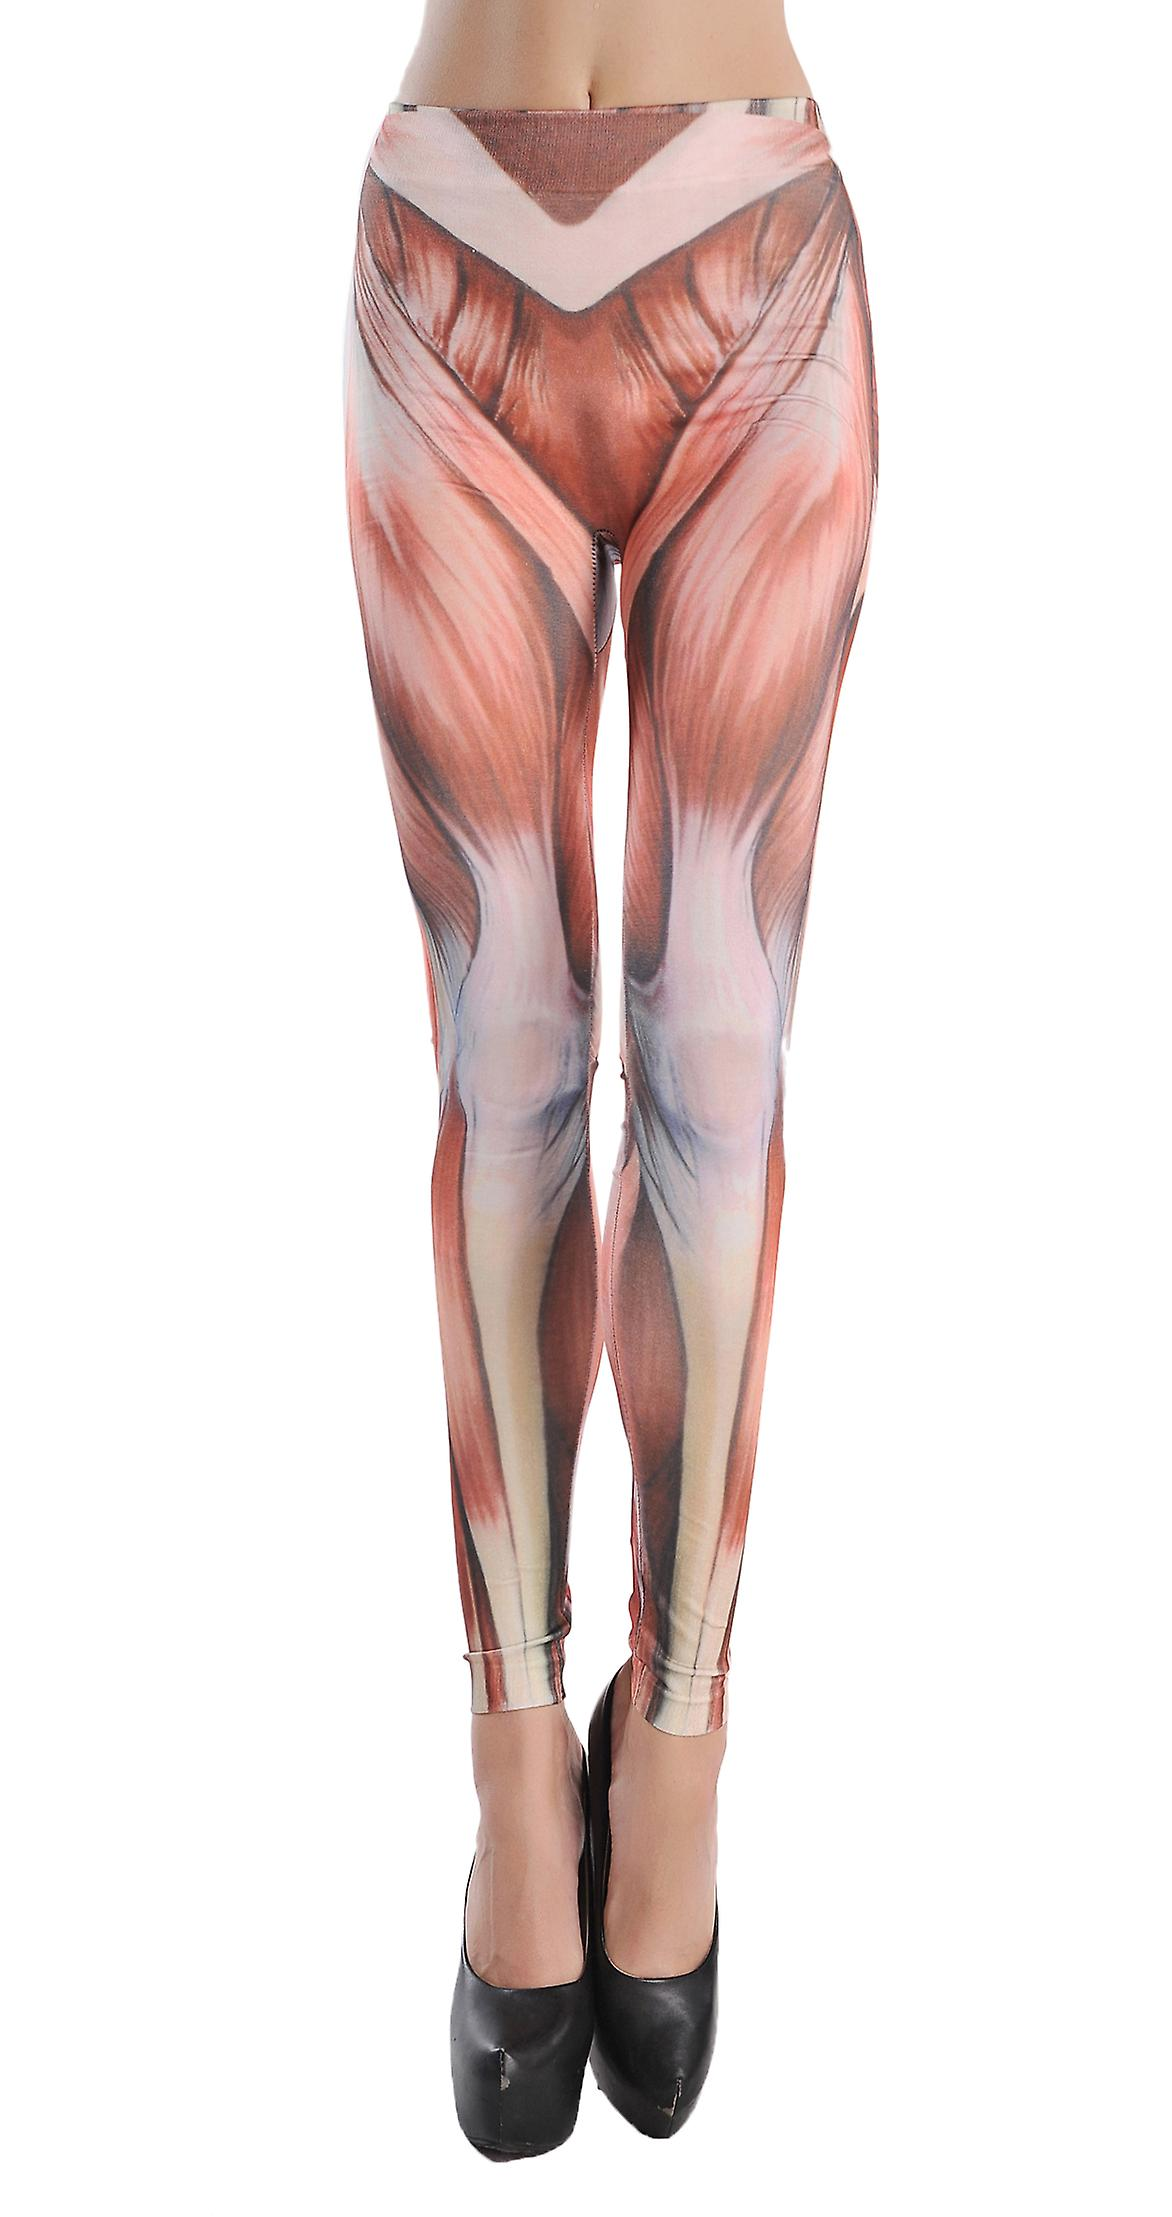 Waooh - Fashion - Leggings pattern muscles